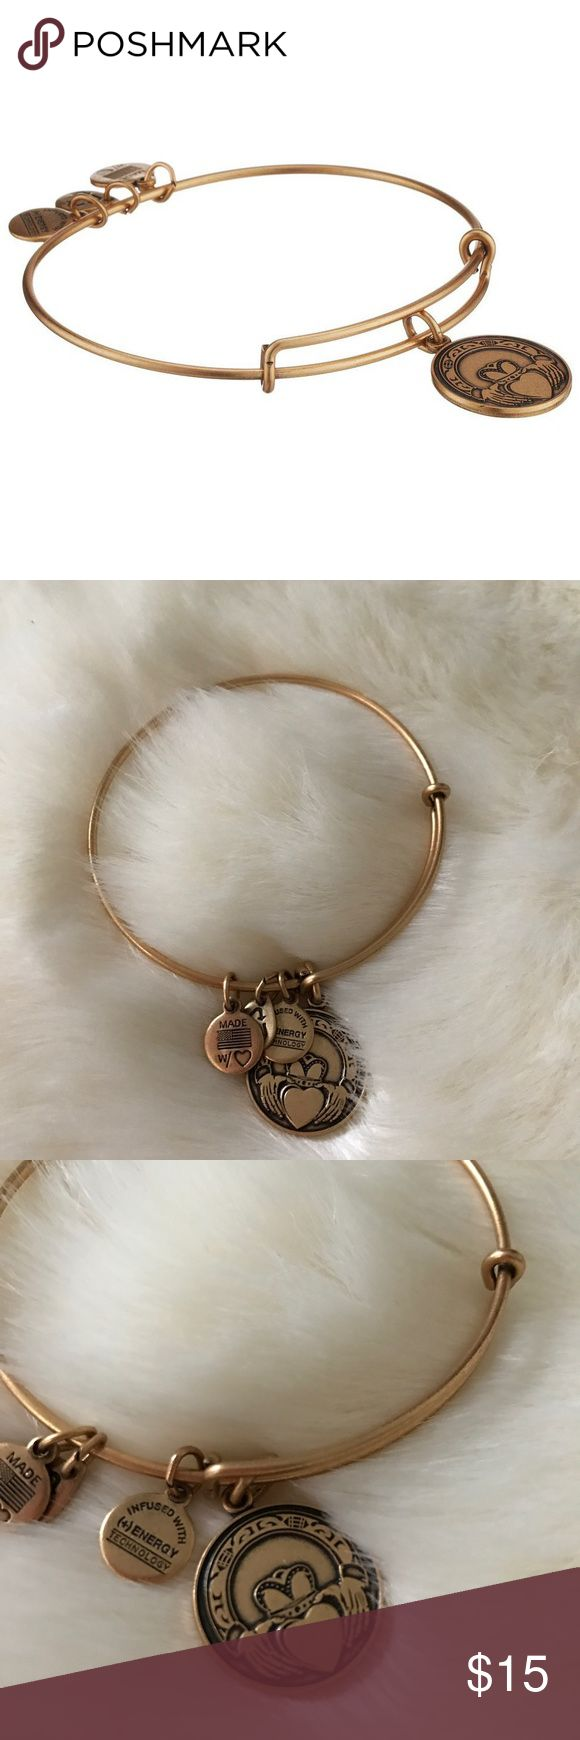 Alex And Ani Claddagh Charm Bangle The Claddagh Symbolizes The State Of The  Heart It